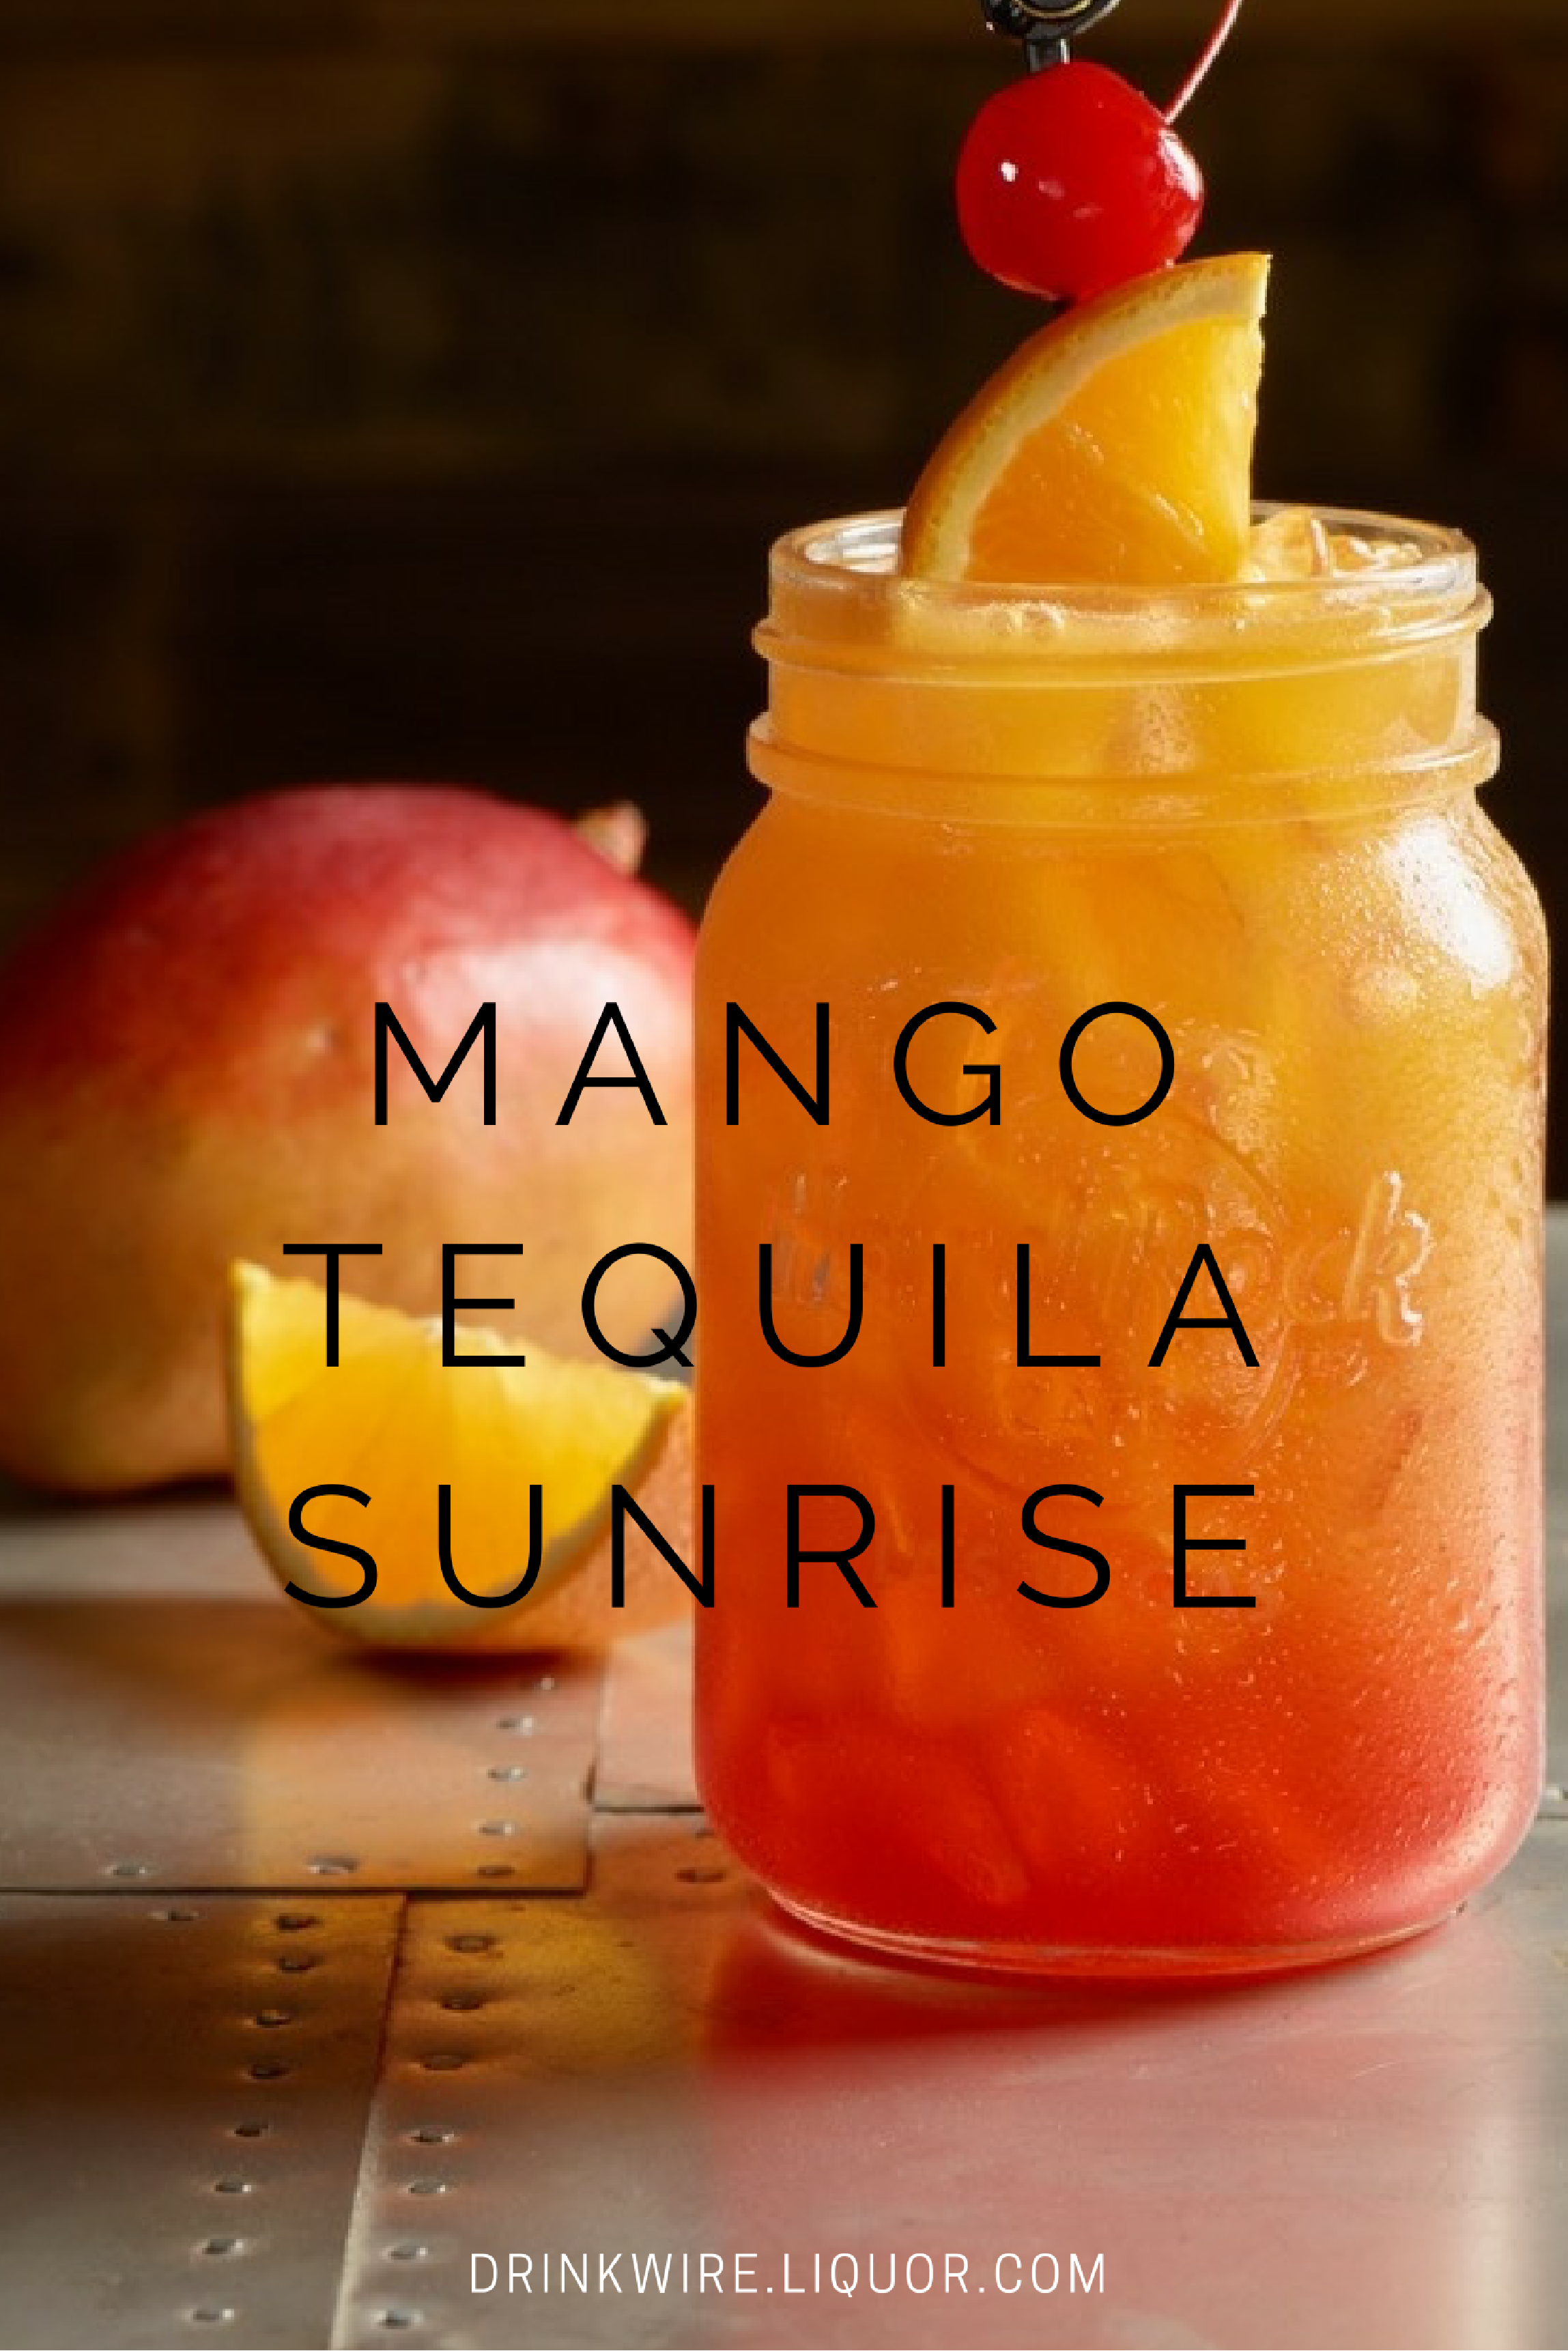 The Mango Tequila Sunrise One Of Our Favorite Clics With A Fruity Twist